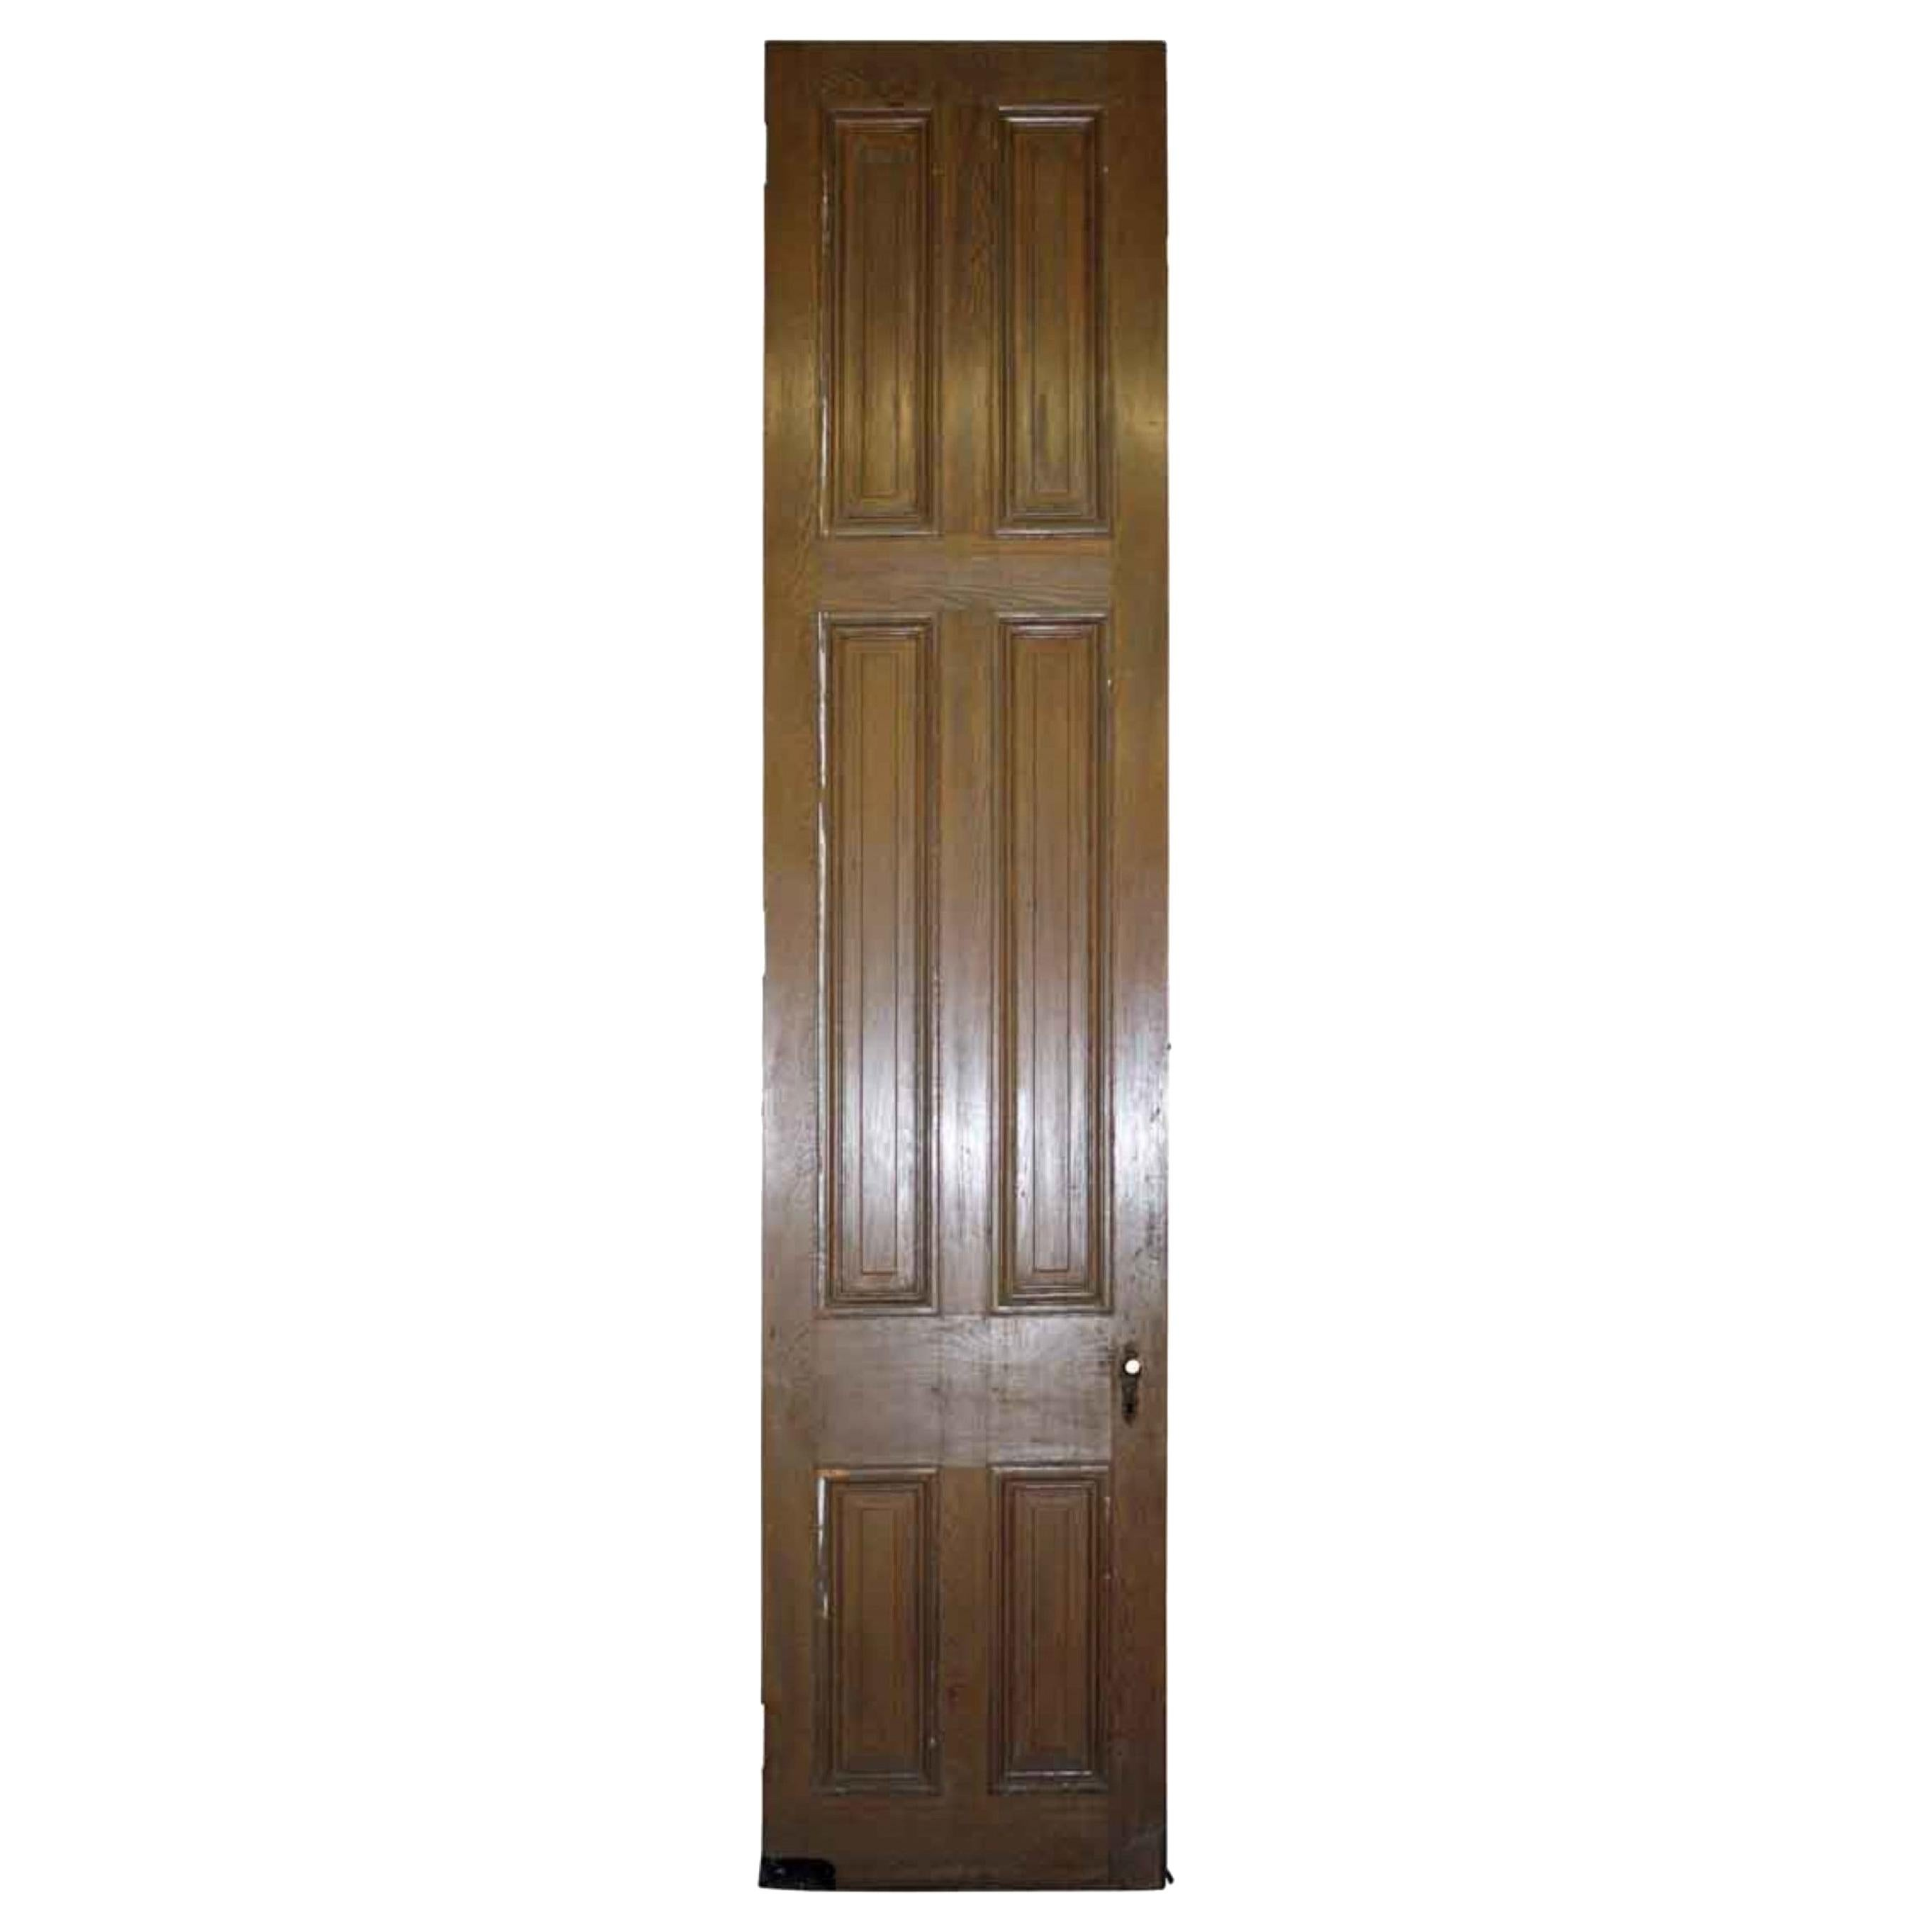 1920s Antique 6-Panel Wood Passage Door